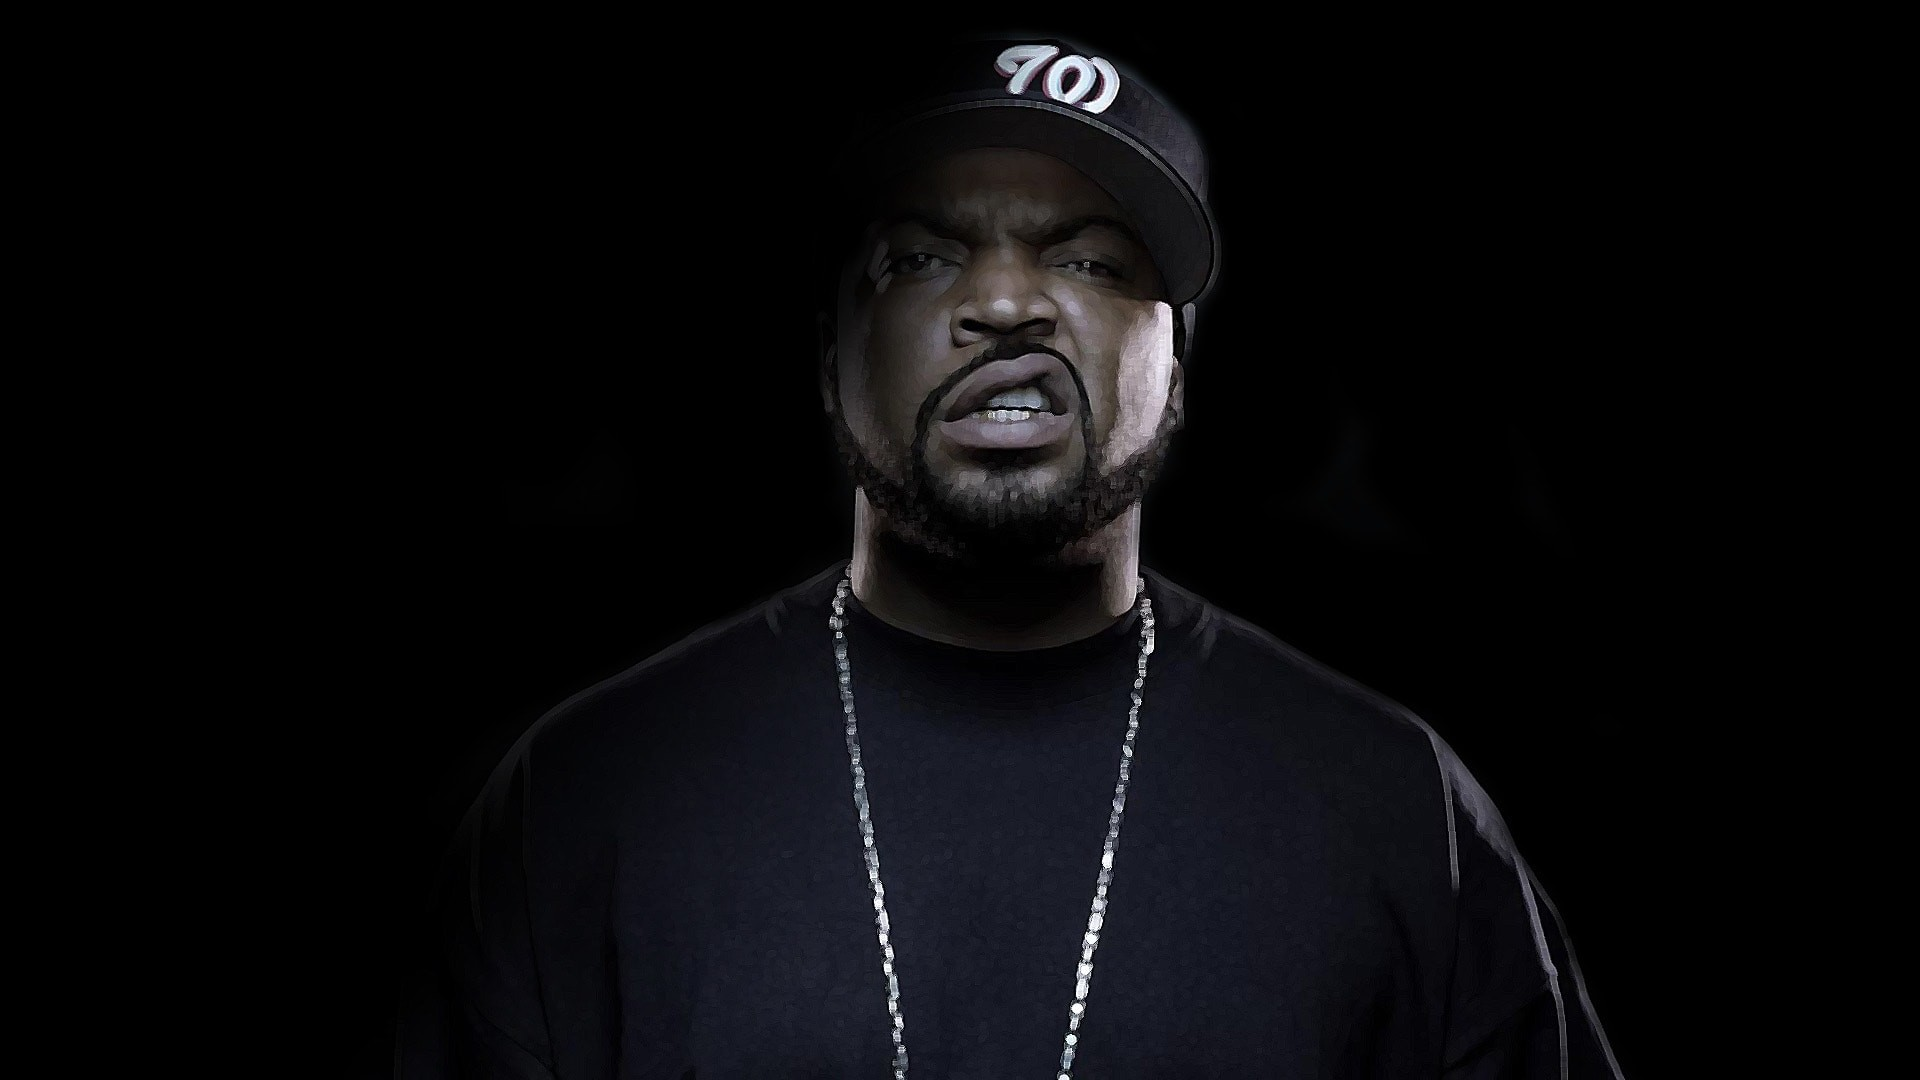 Ice Cube Wallpapers Ice Cube widescreen wallpapers